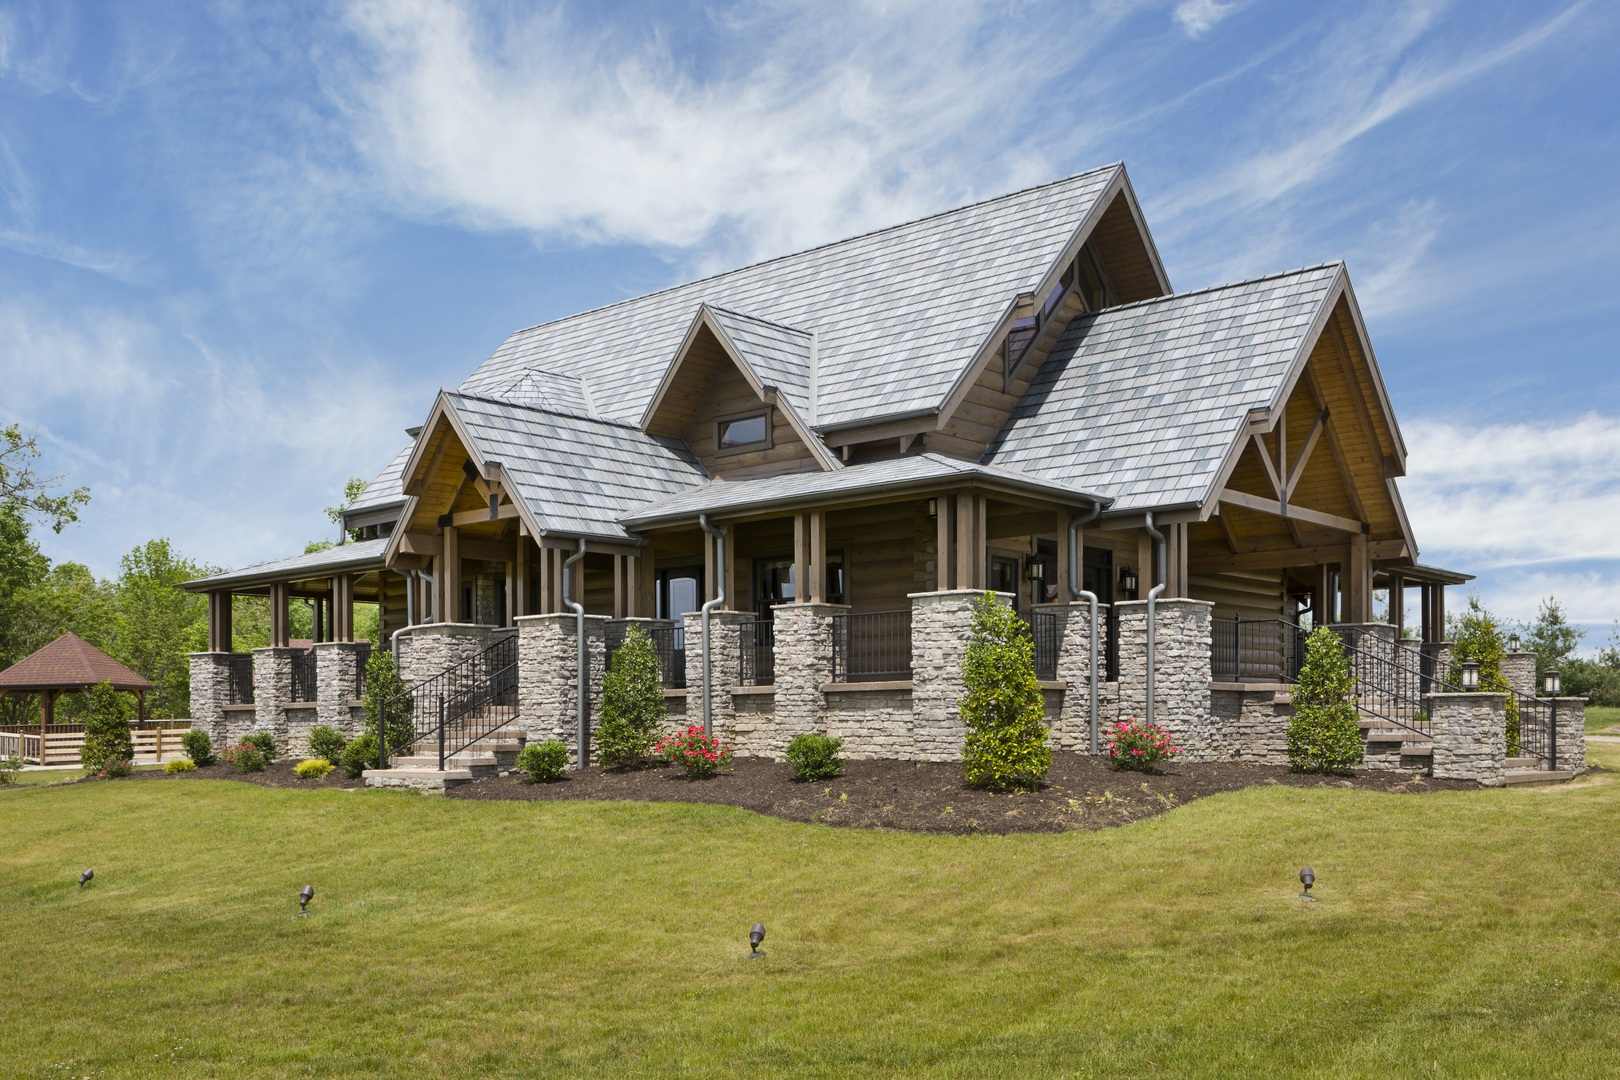 Honest Abe Log Homes In Celina Tn Tennessee Vacation